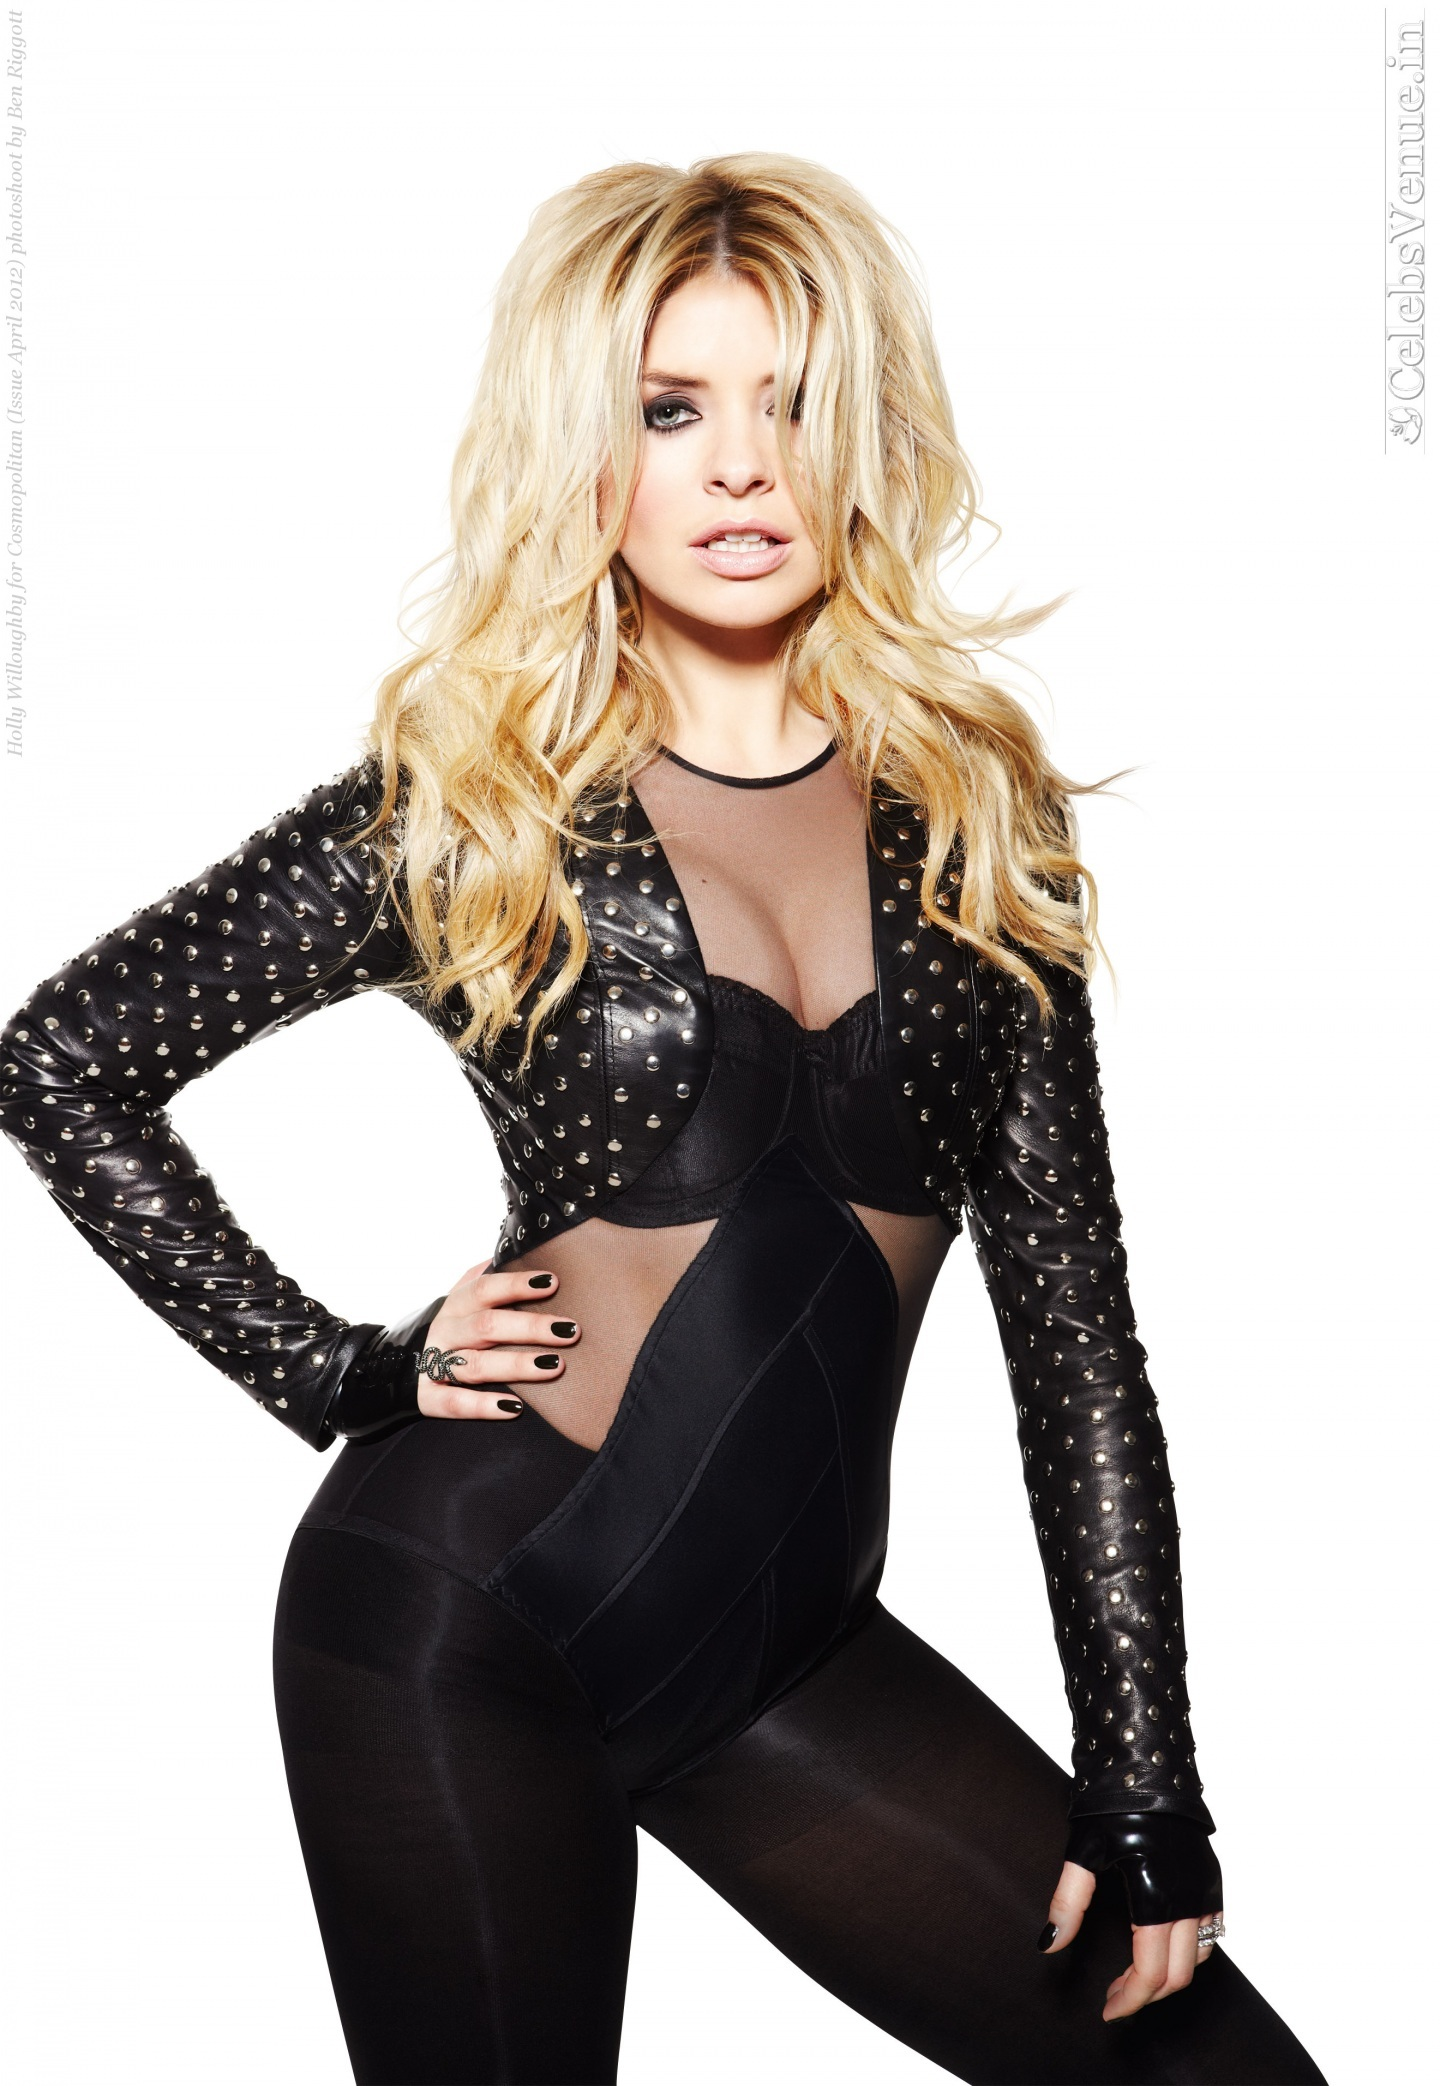 Holly Willoughby For Cosmopolitan Issue April Phot